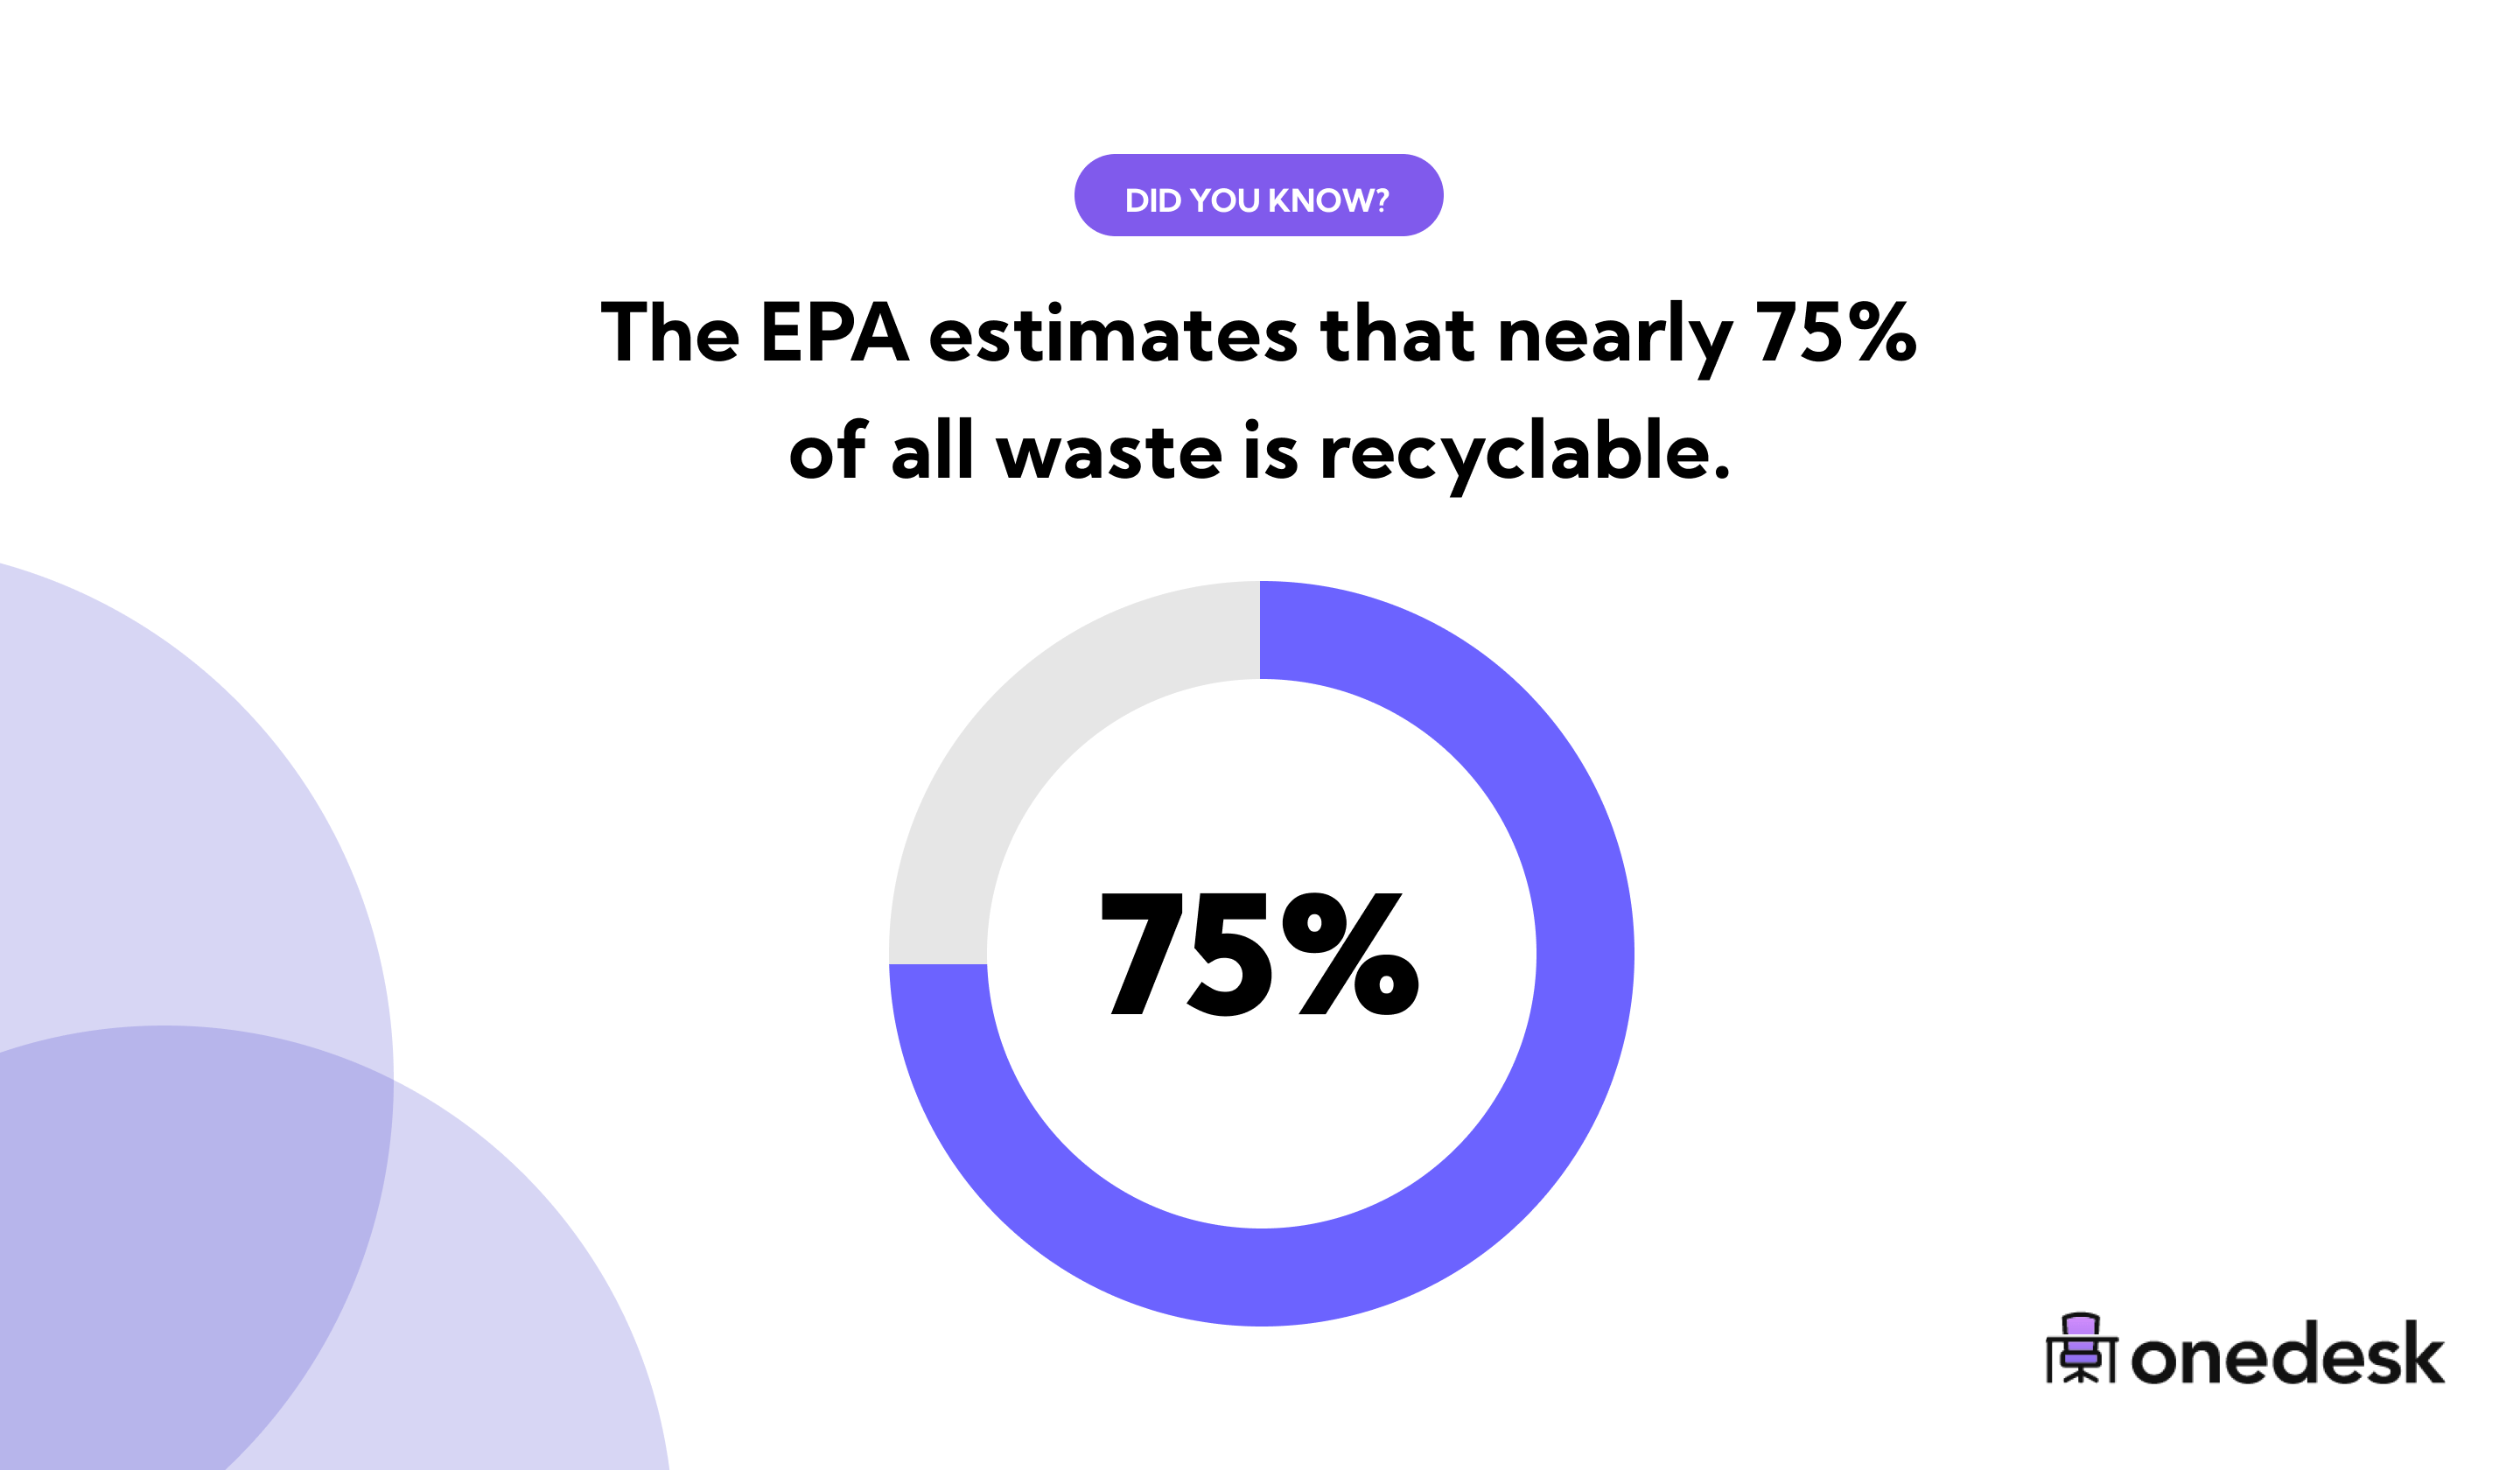 75 percent of waste is recyclable